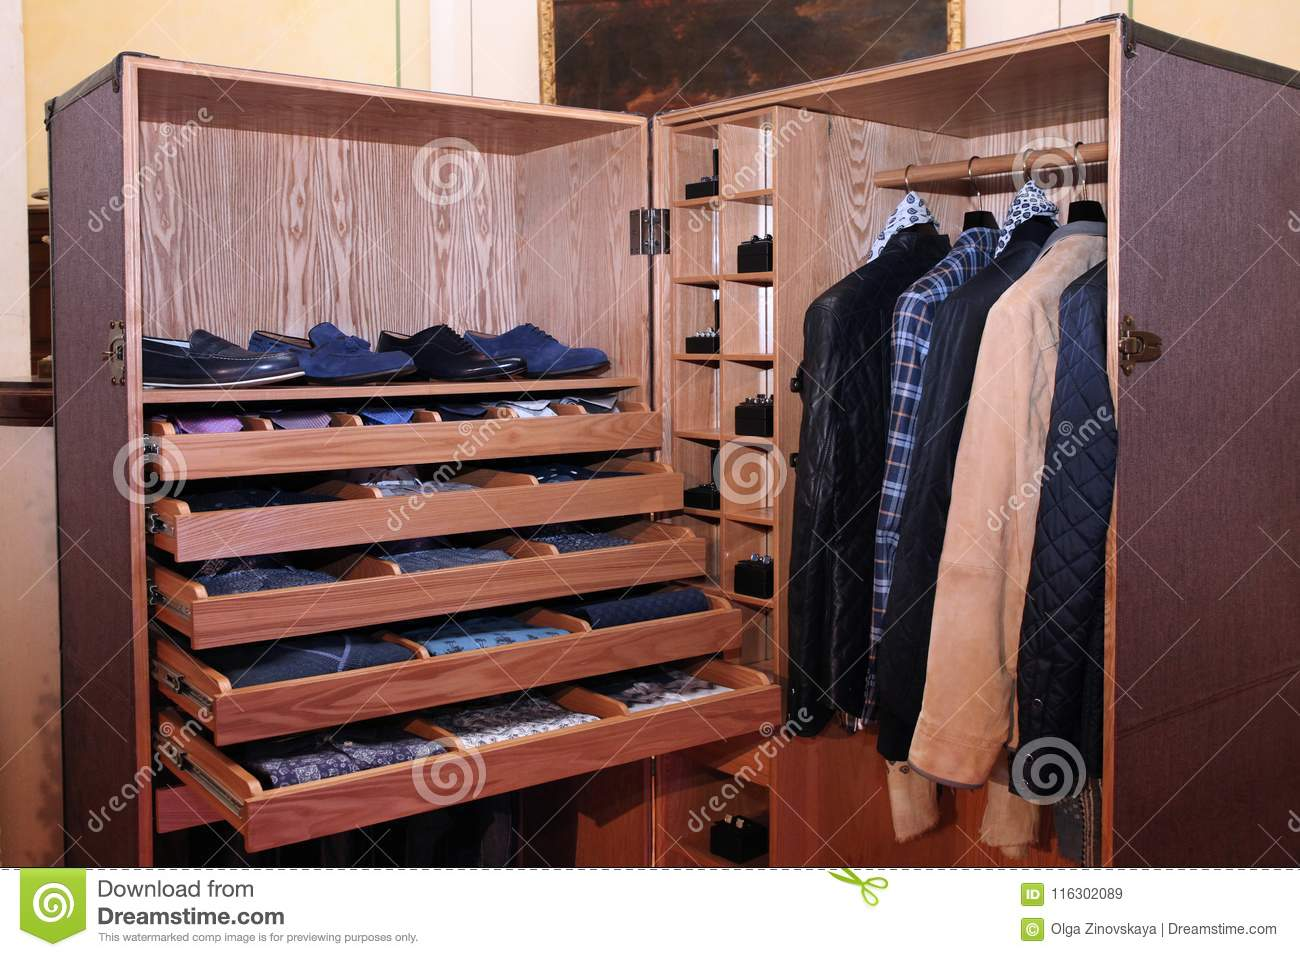 Expensive Fashionable Men`s Clothing And Shoes In An Unusual Closet Made Of  Wood